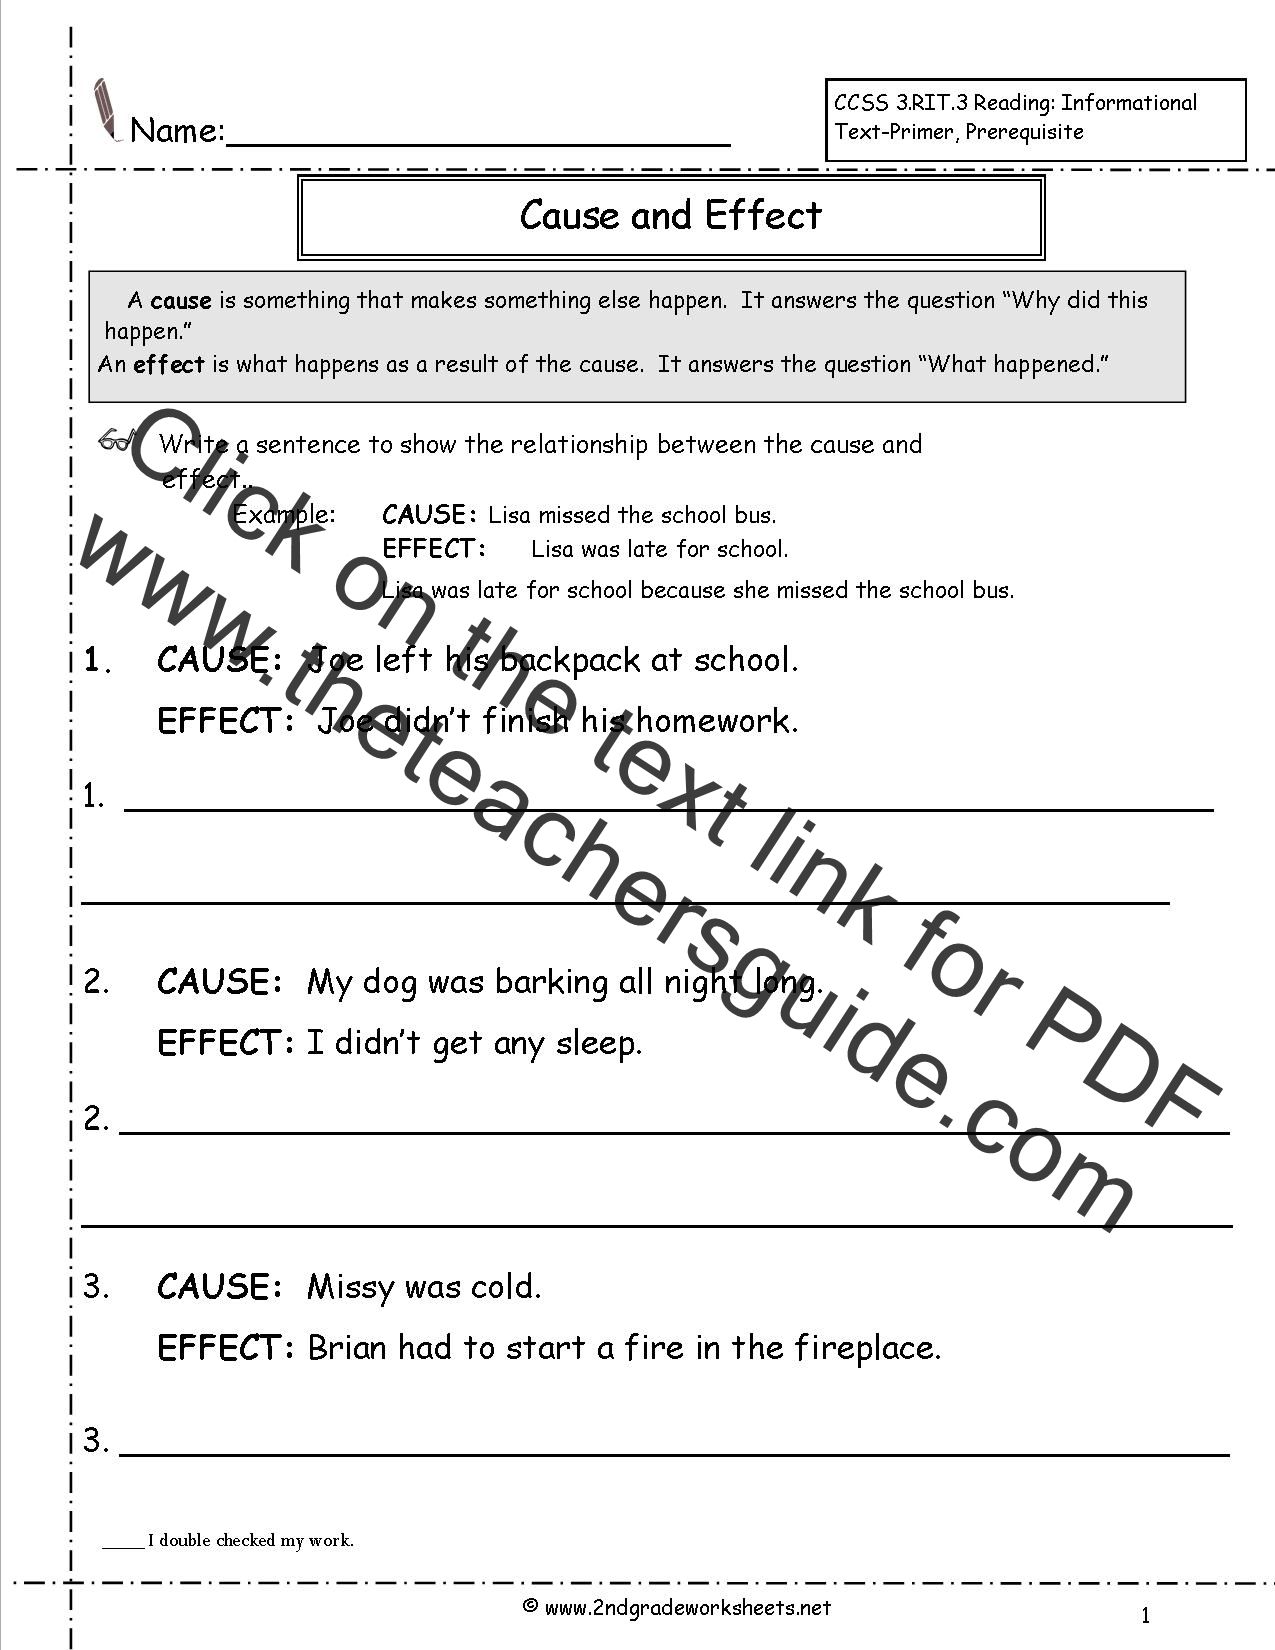 Cause and Effect Worksheets – Cause and Effect Worksheets 3rd Grade